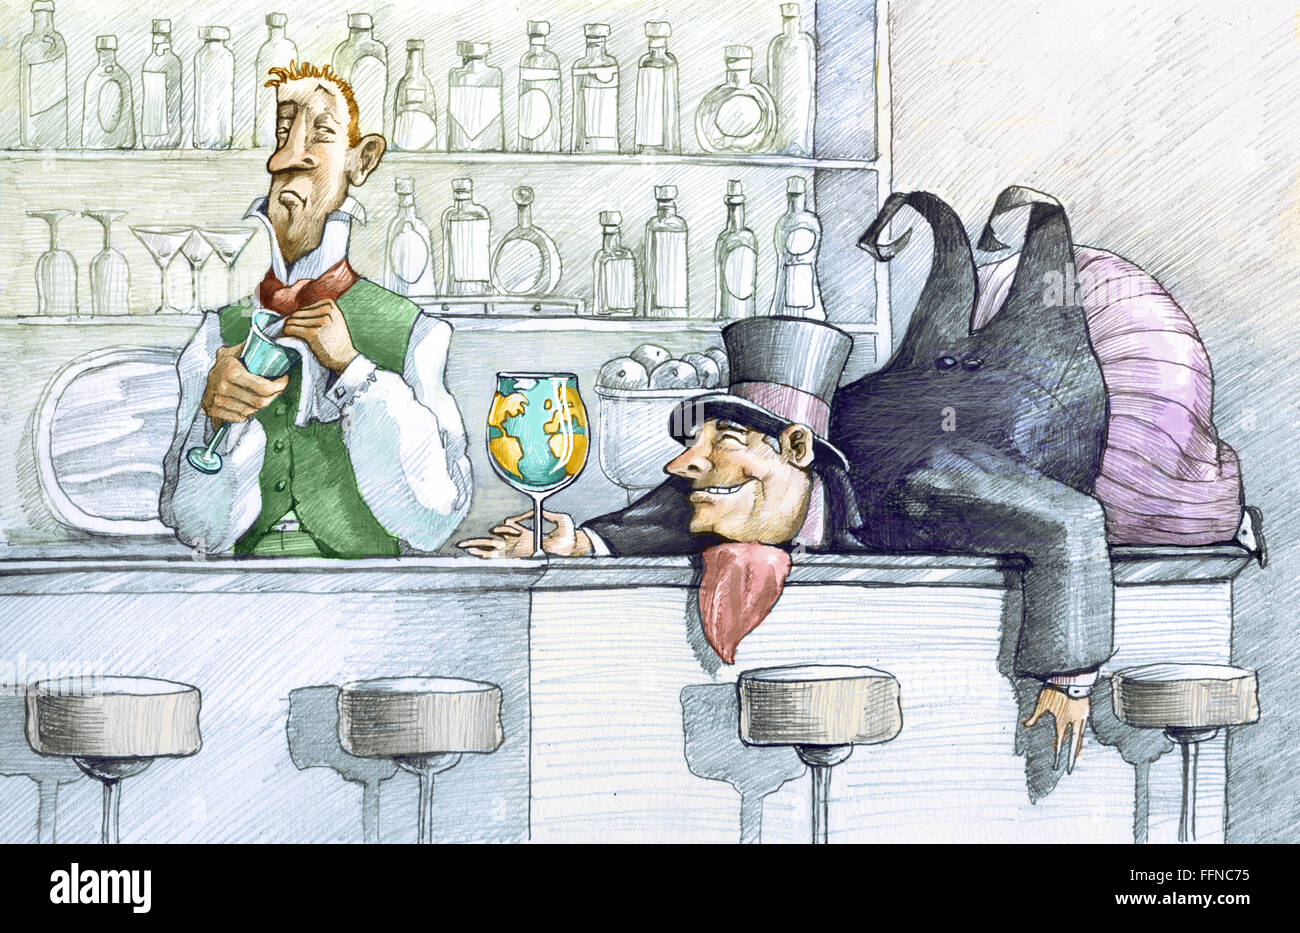 a greedy drunk fat man lying on a bar counter holding a glass globe, the bartender looks at him with undisguised - Stock Image